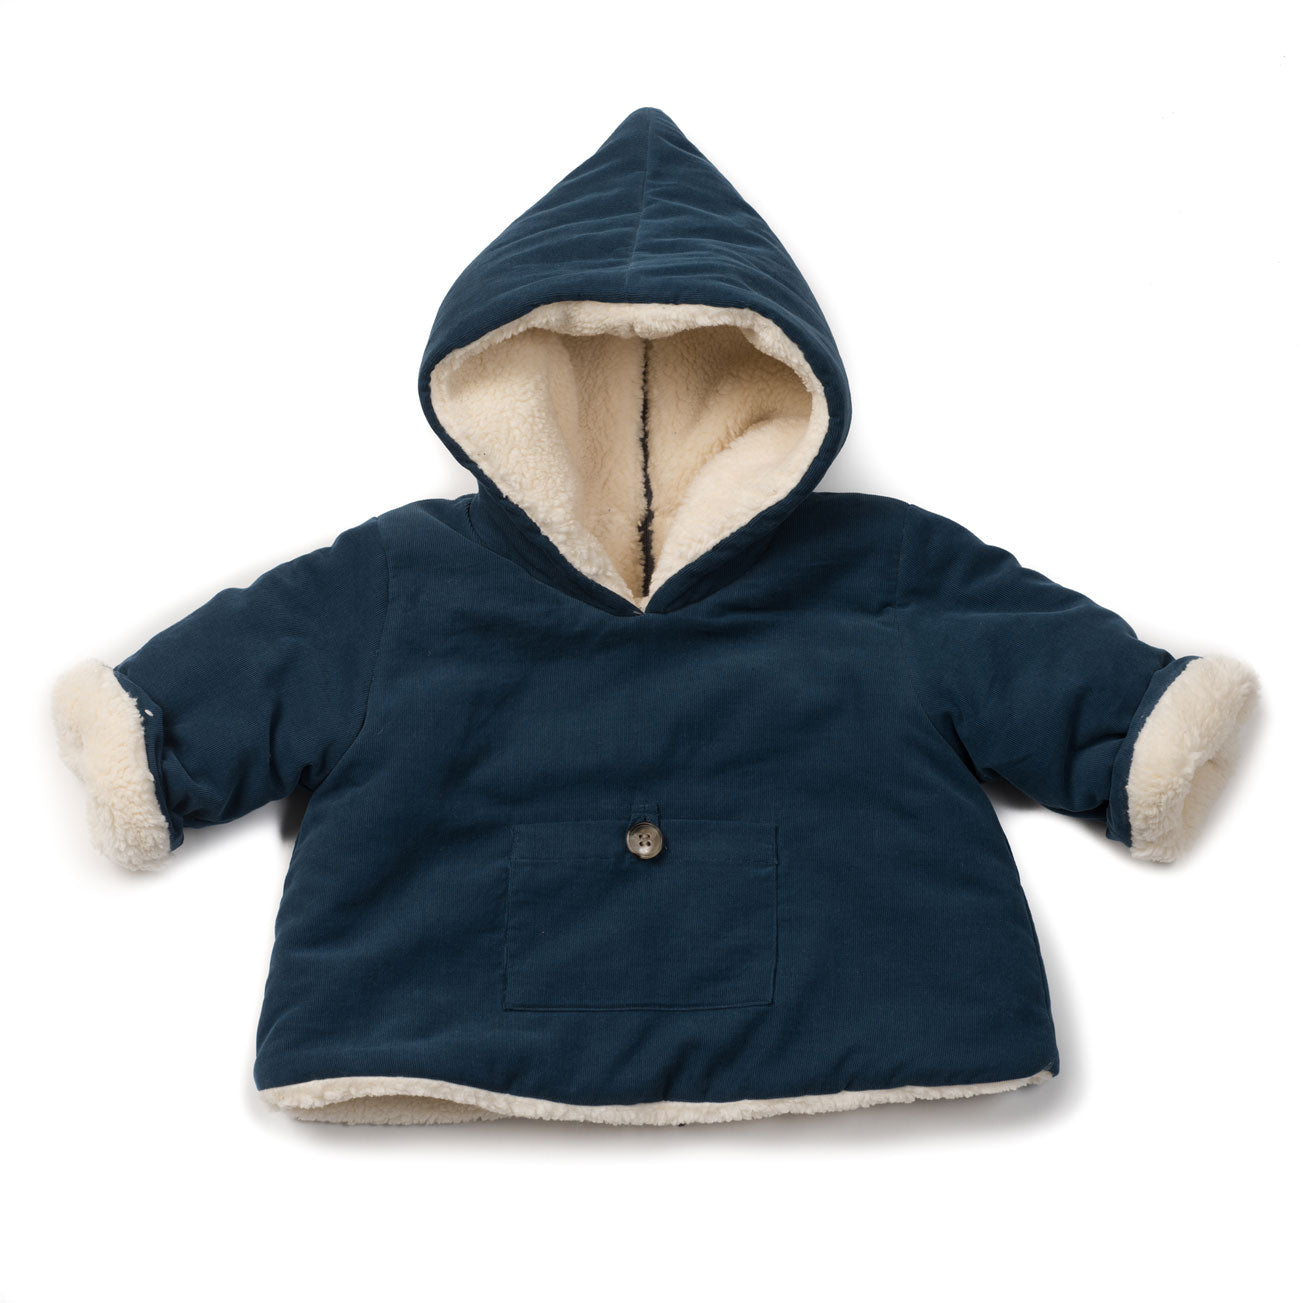 71405ffa1af5 Bonton Shark Blue Burnout Baby Jacket | Ladida